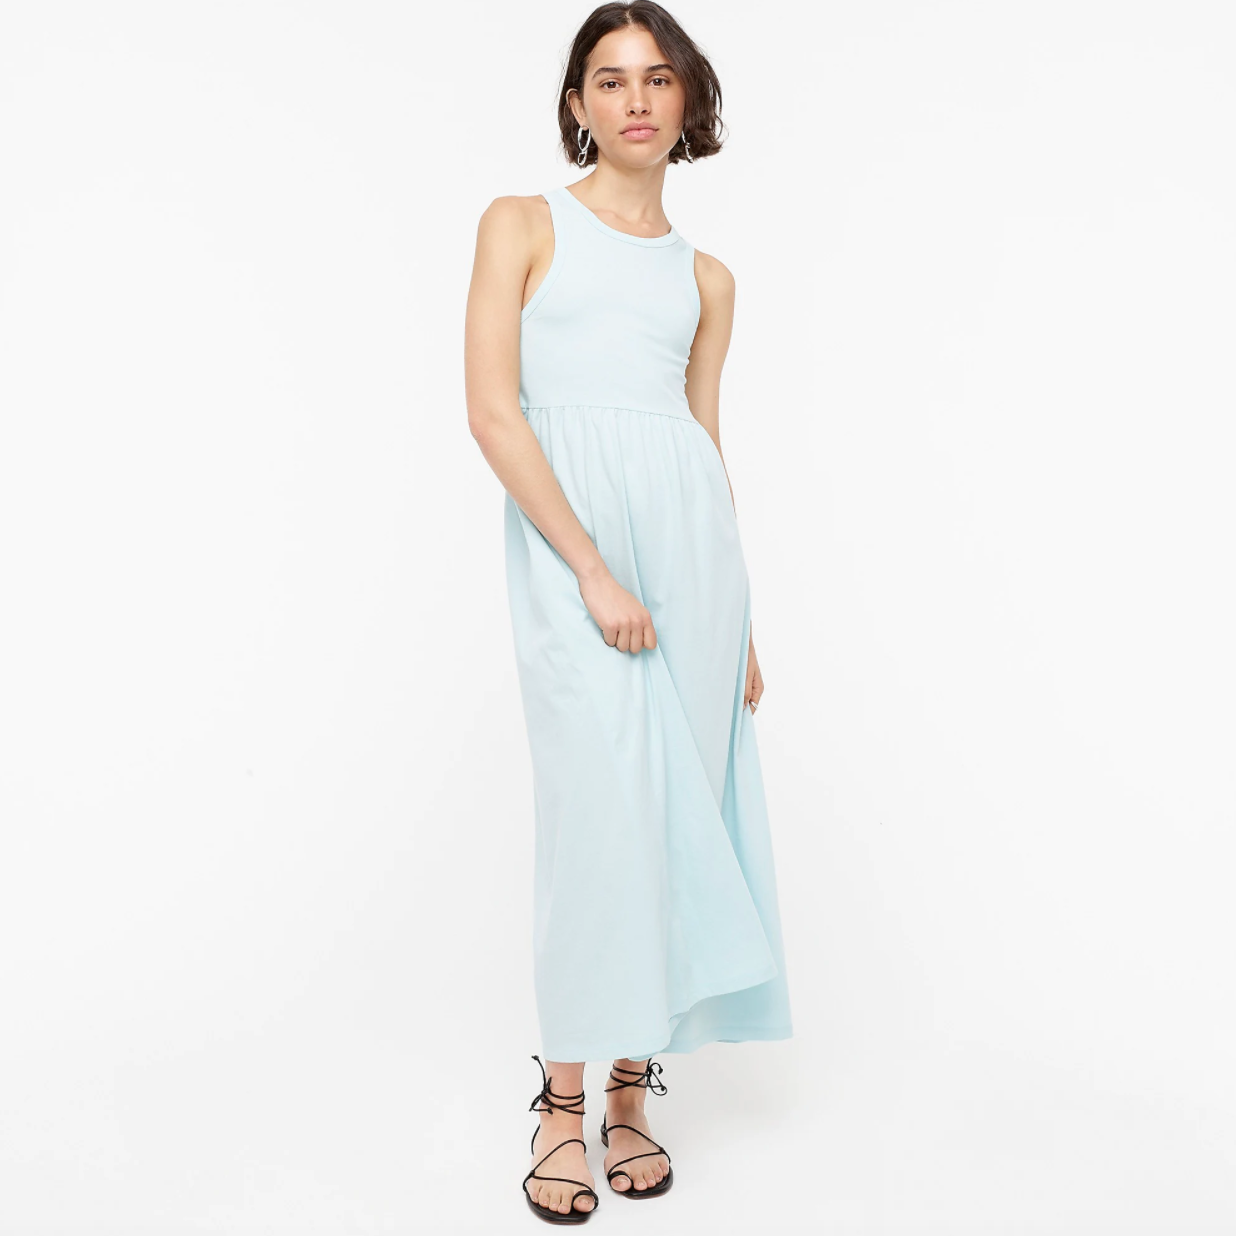 J Crew Knit Cutaway Tank Maxi Dress in Scenic Aqua